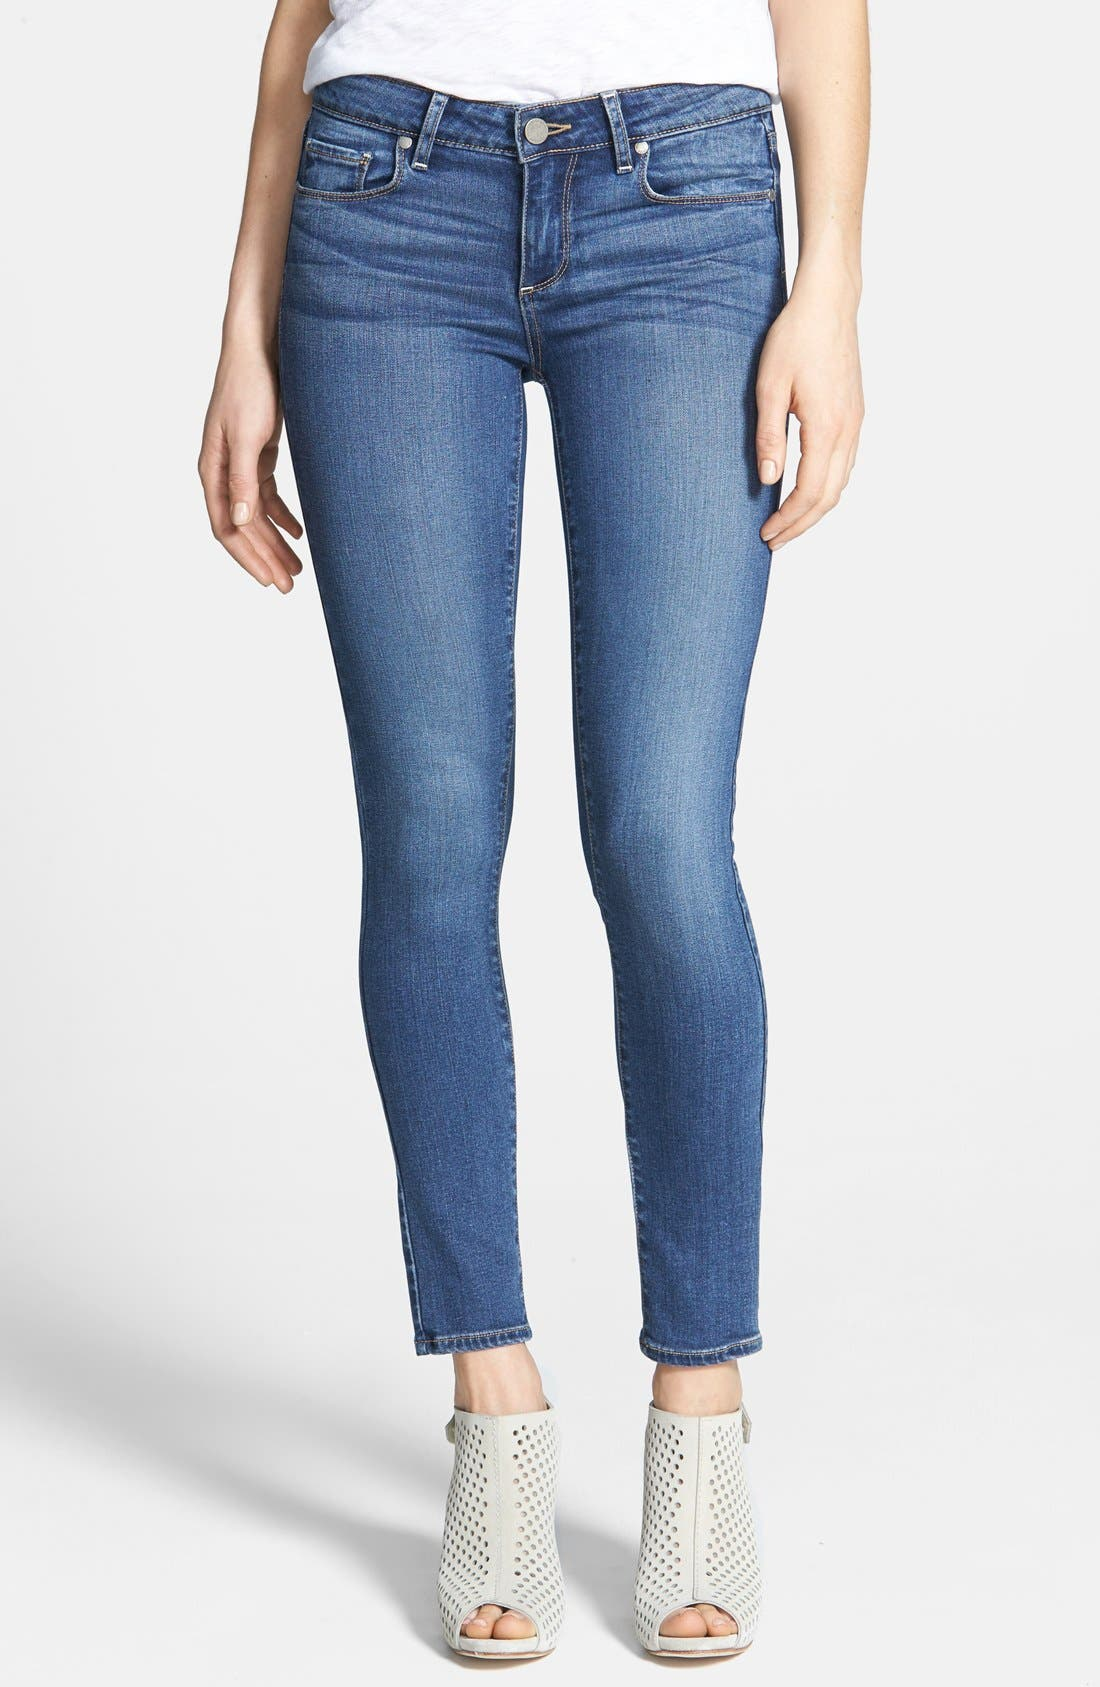 Alternate Image 1 Selected - PAIGE Transcend - Verdugo Ankle Skinny Jeans (Tristan)